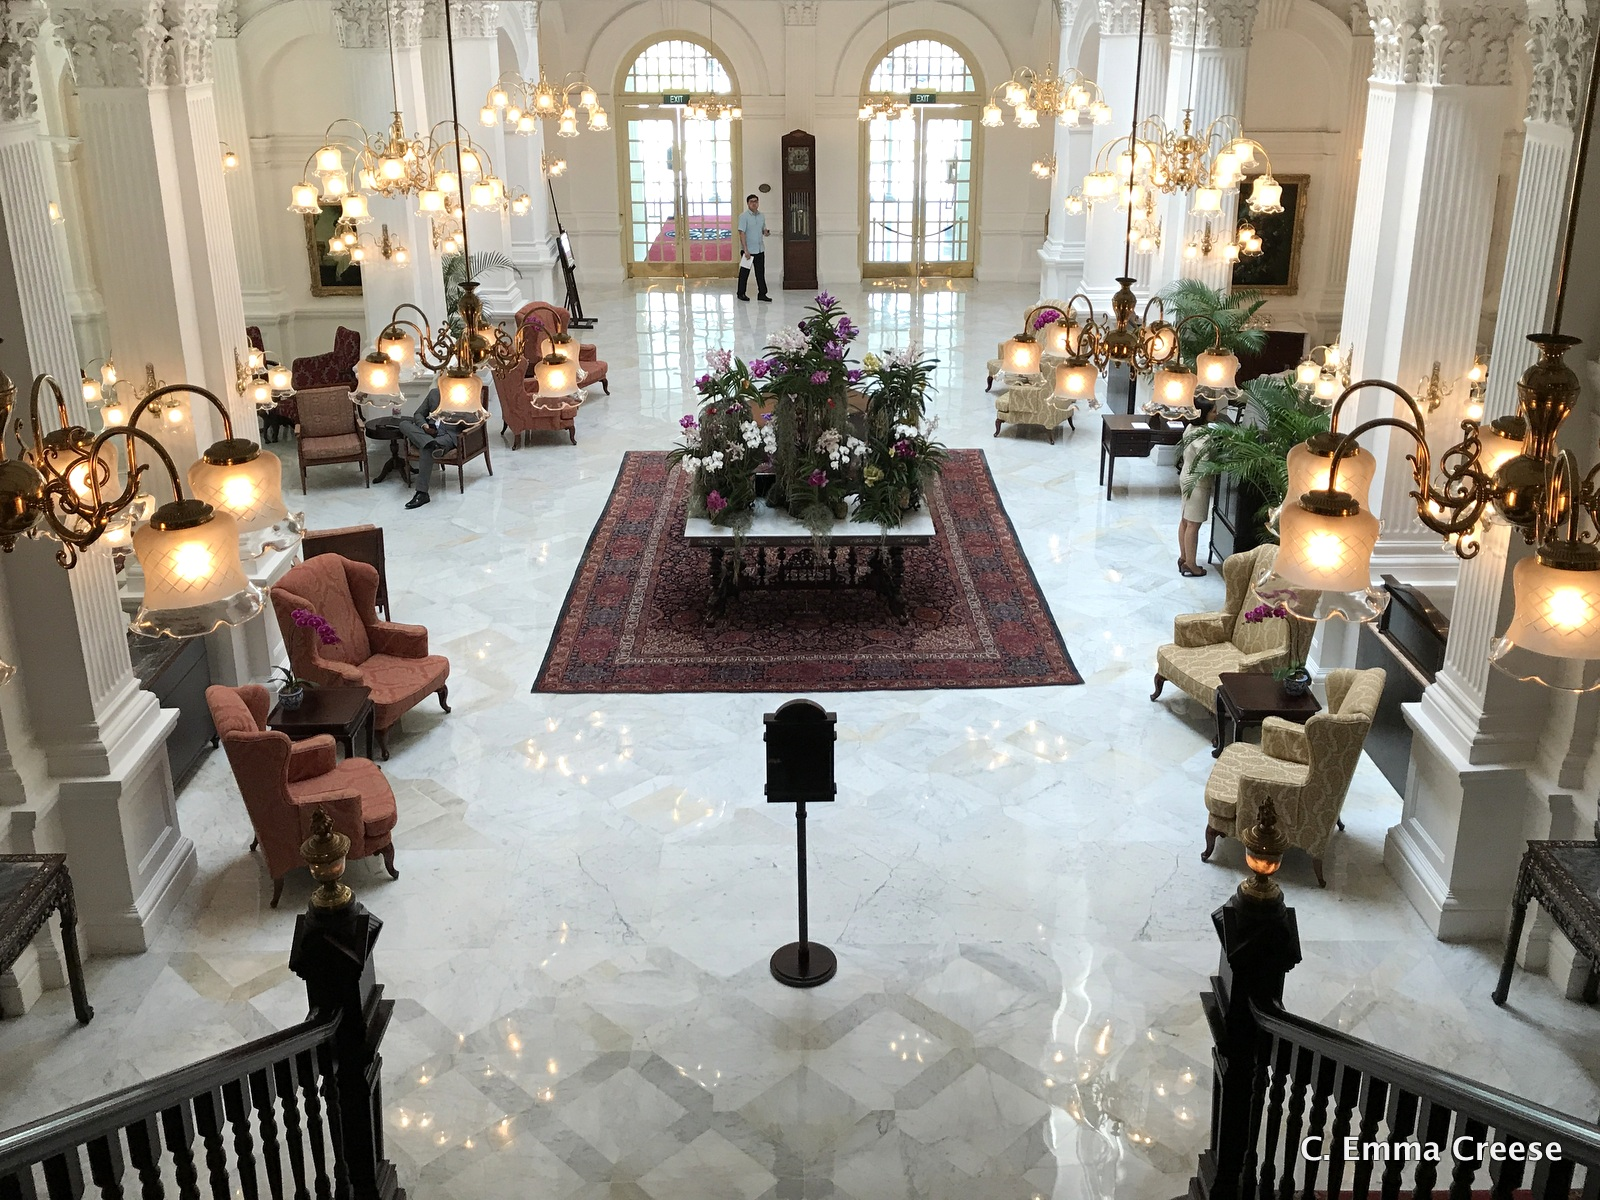 An Iconic Luxury Hotel Review: Raffles, Singapore